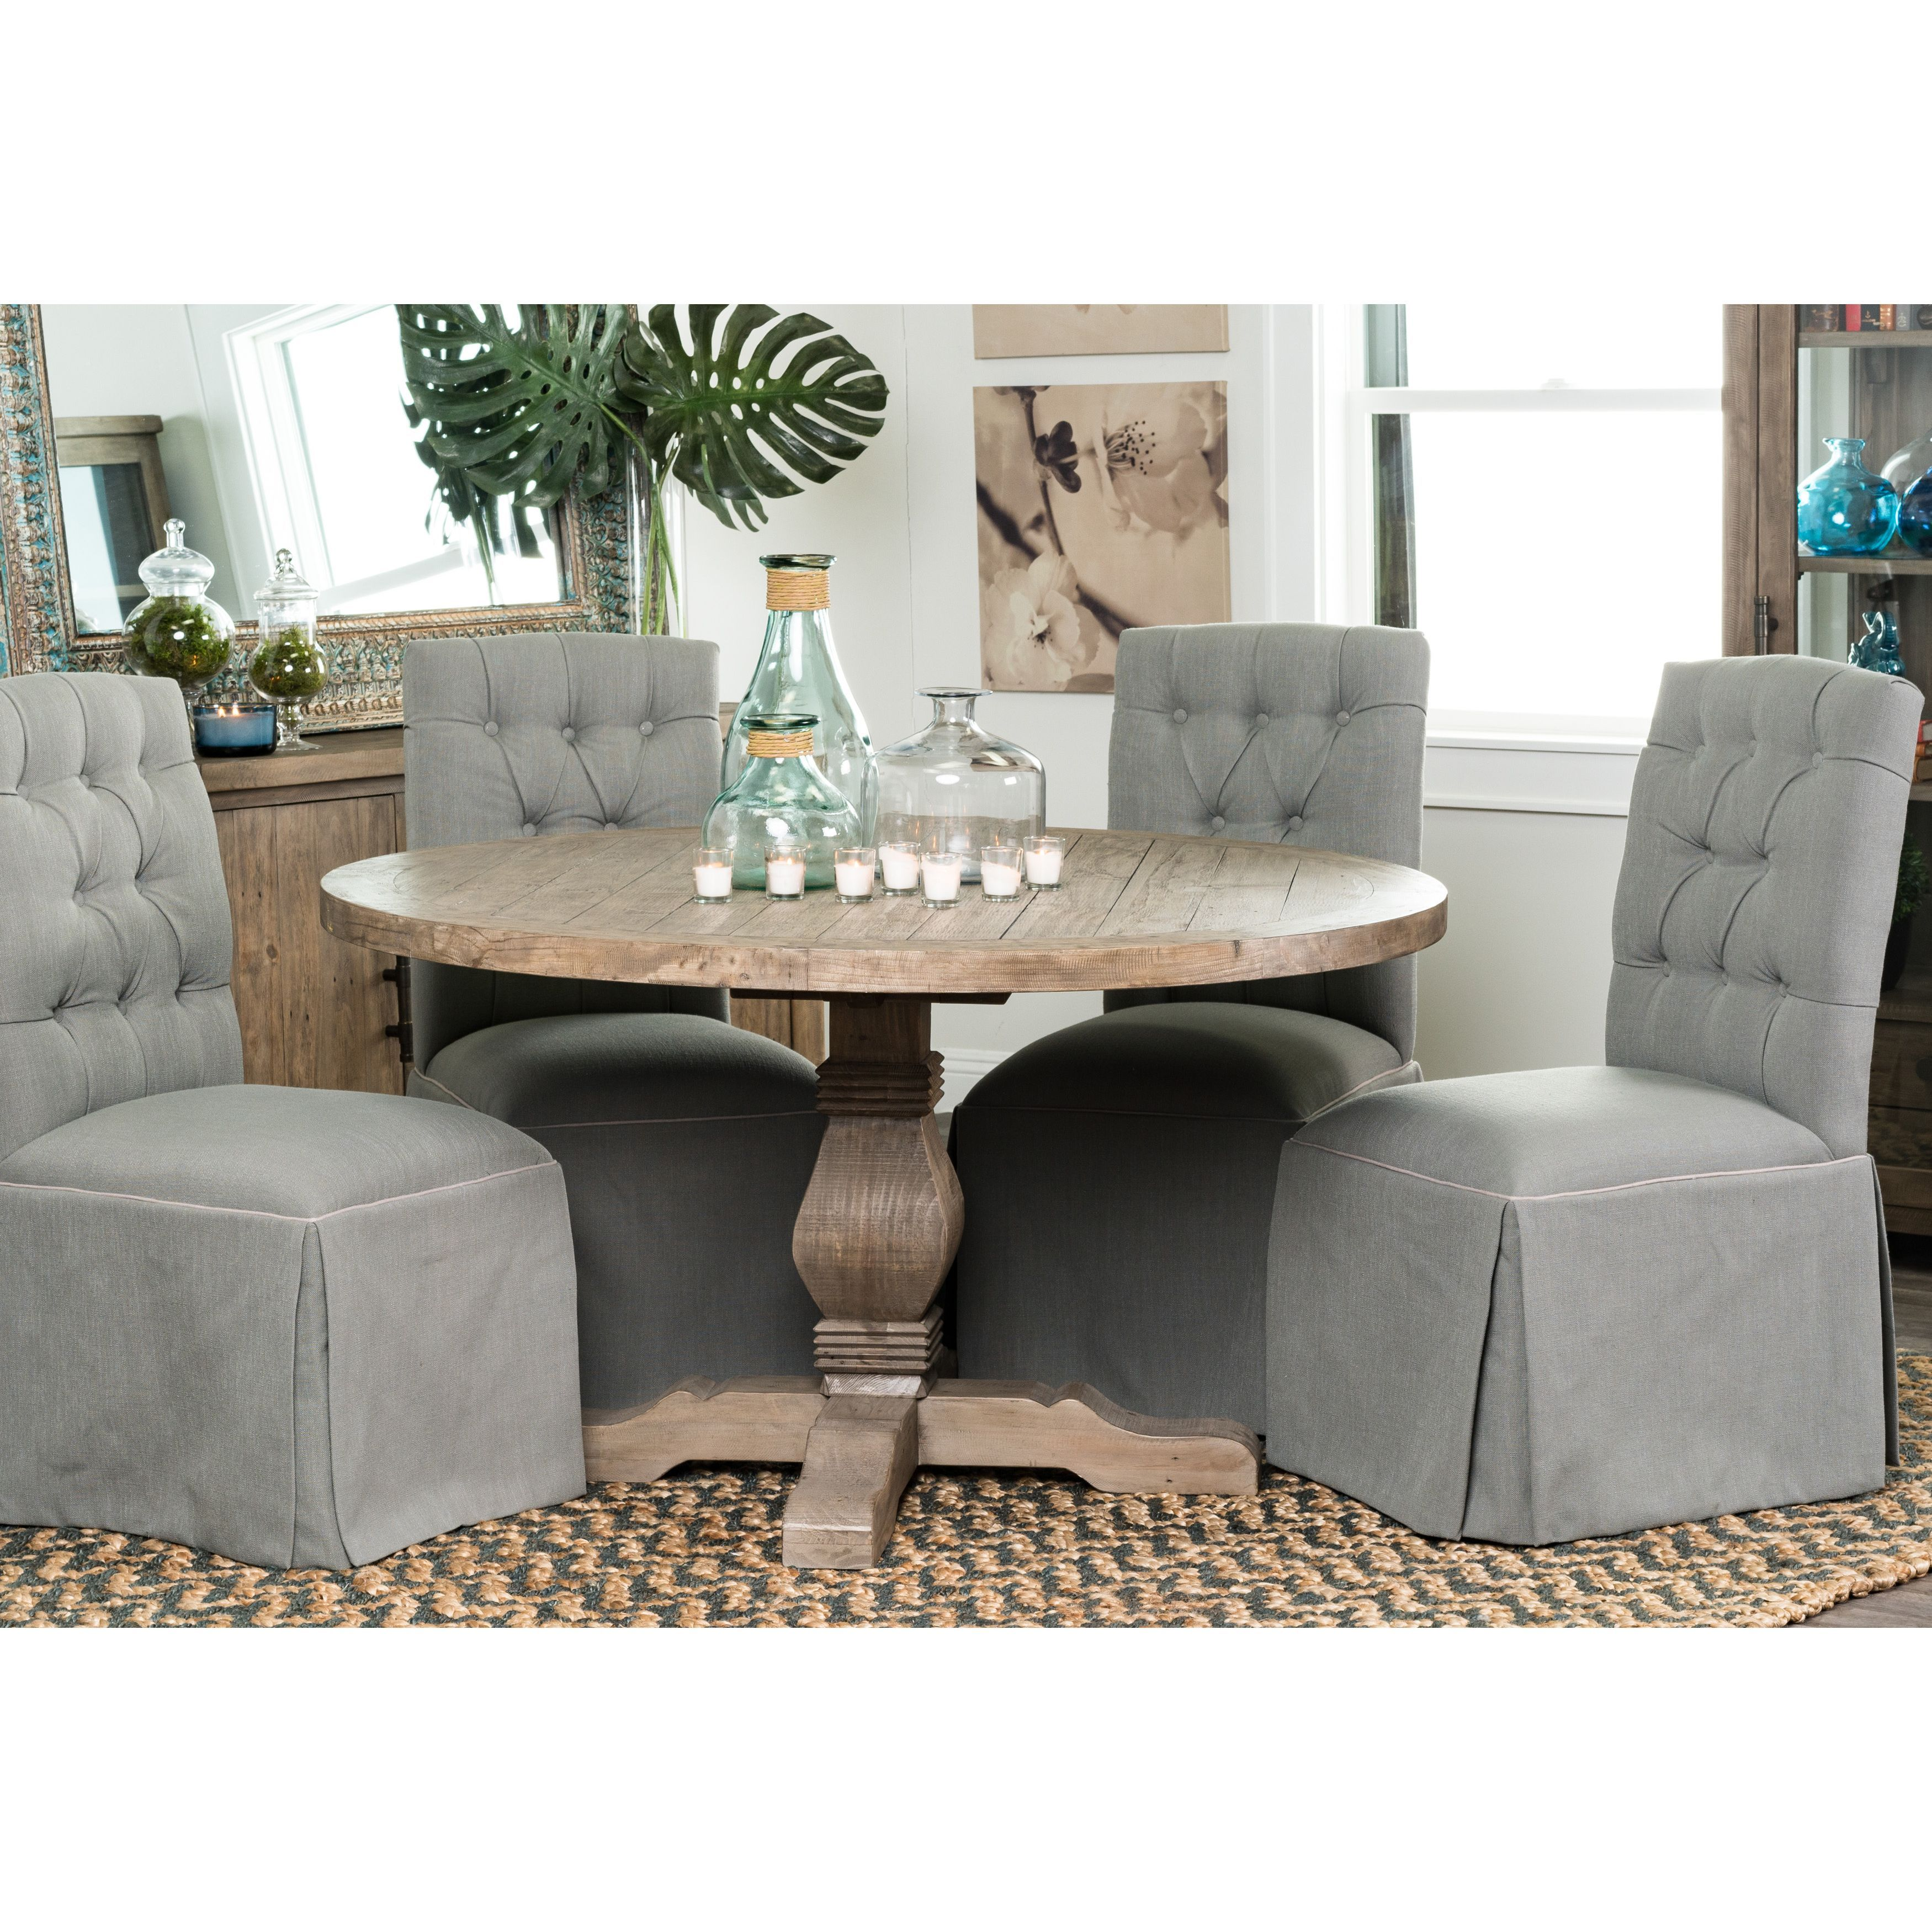 Overstock Com Online Shopping Bedding Furniture Electronics Jewelry Clothing More Round Dining Table Dining Table Kosas Home